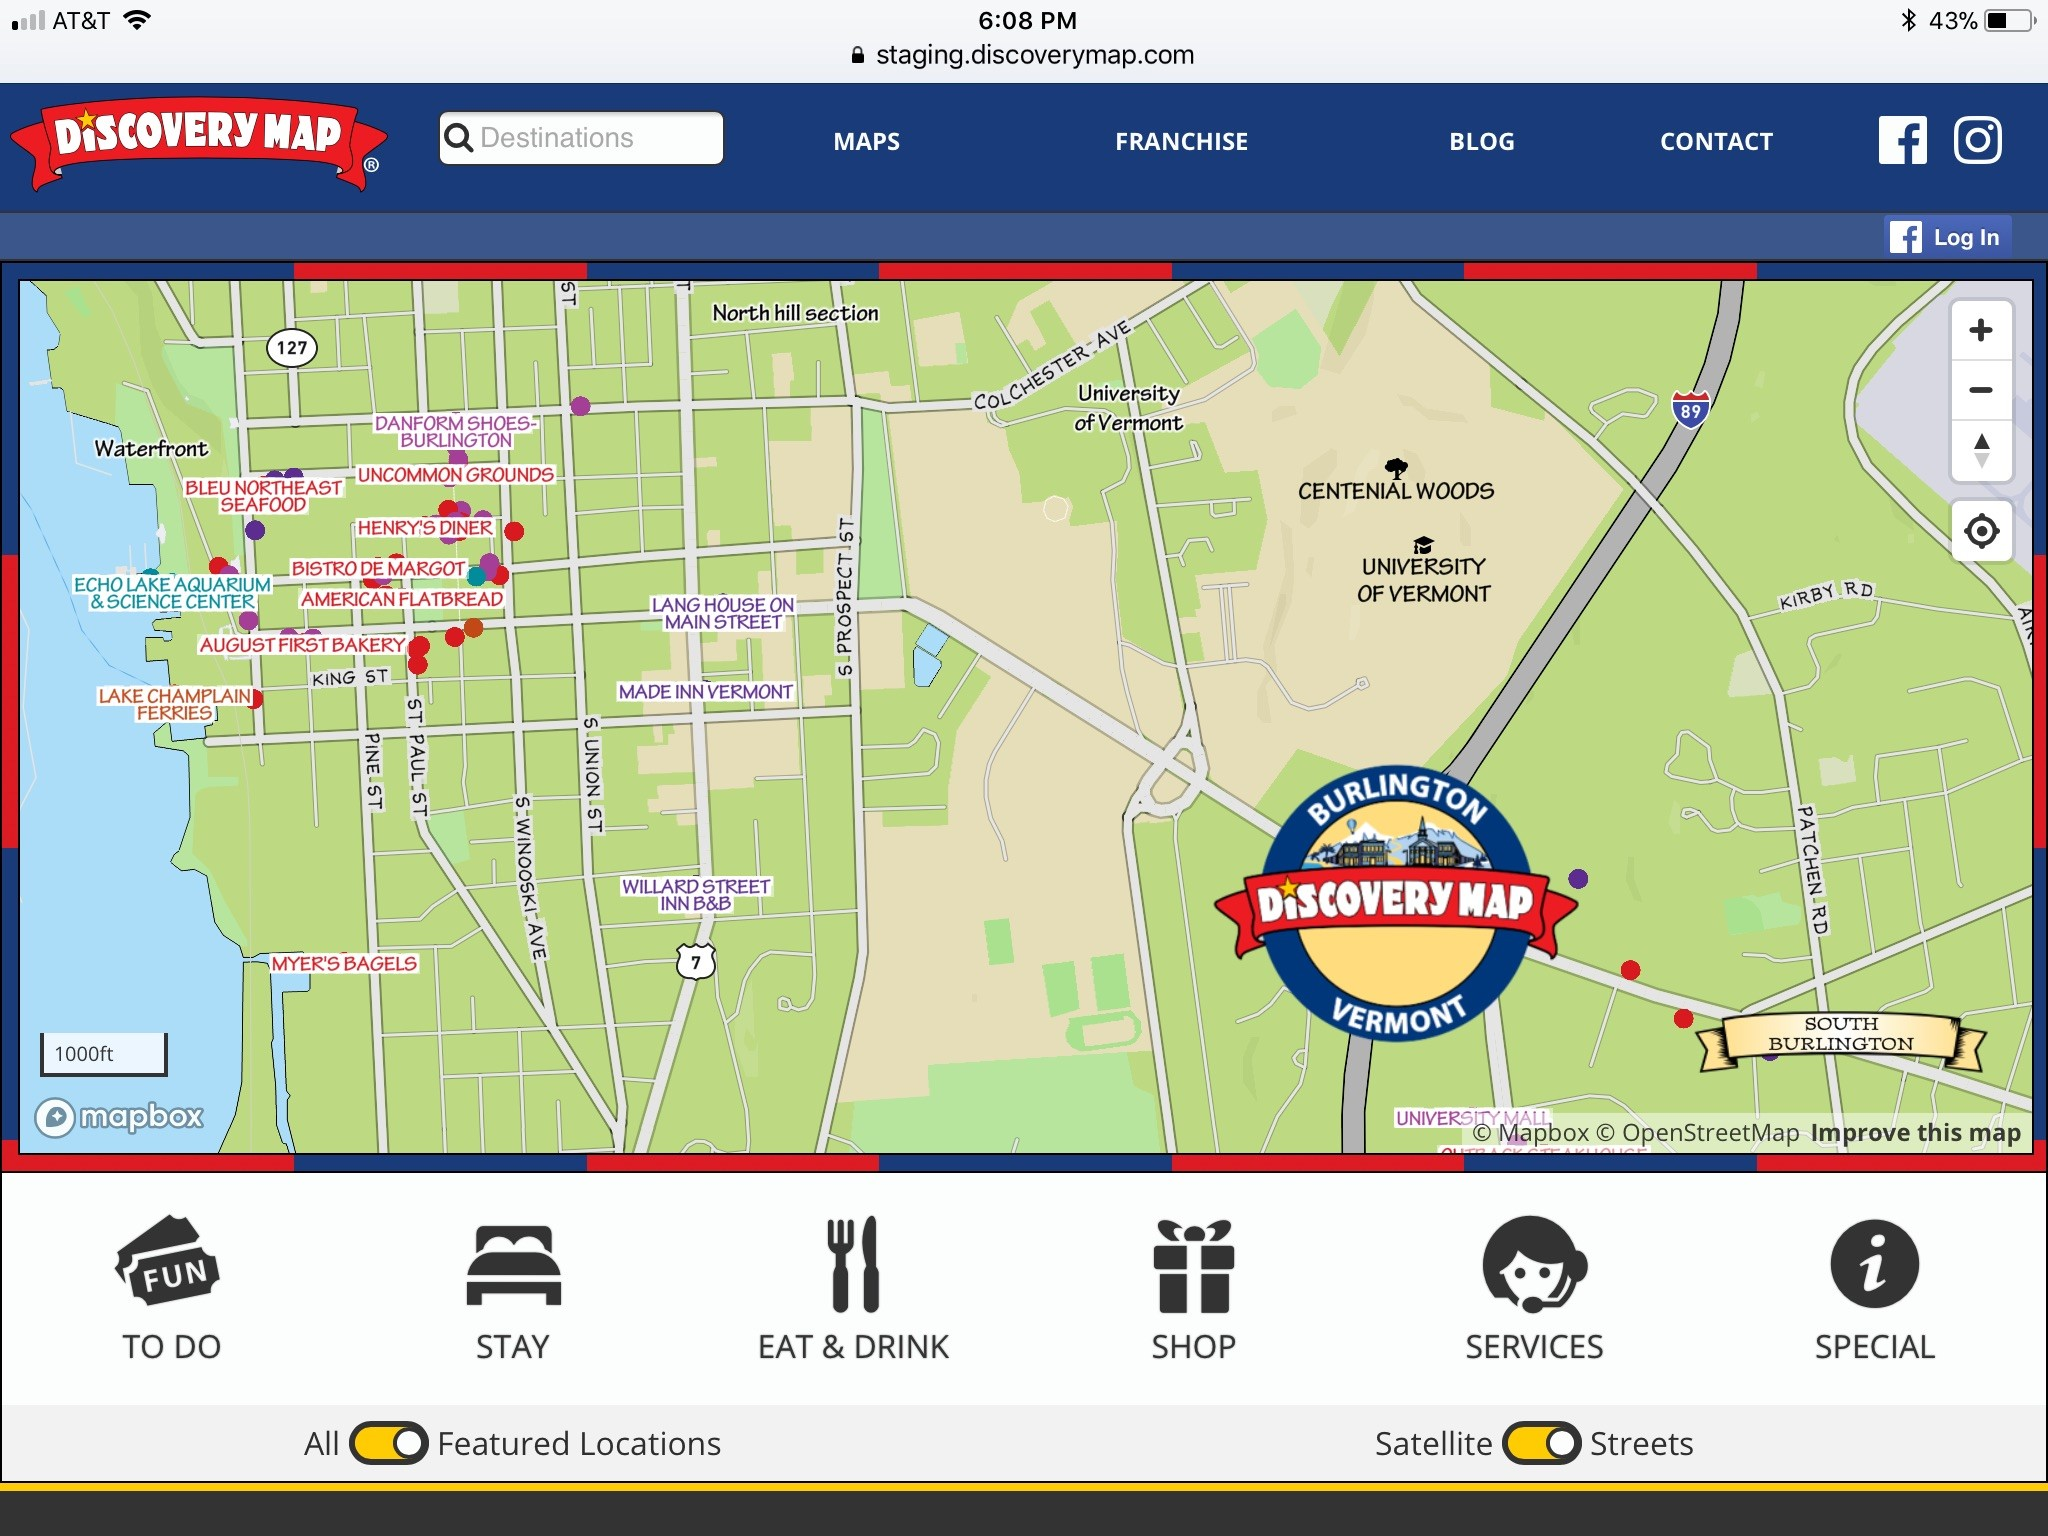 Discovery Maps tips the scale to greater user experience with upgrade to scale map on website